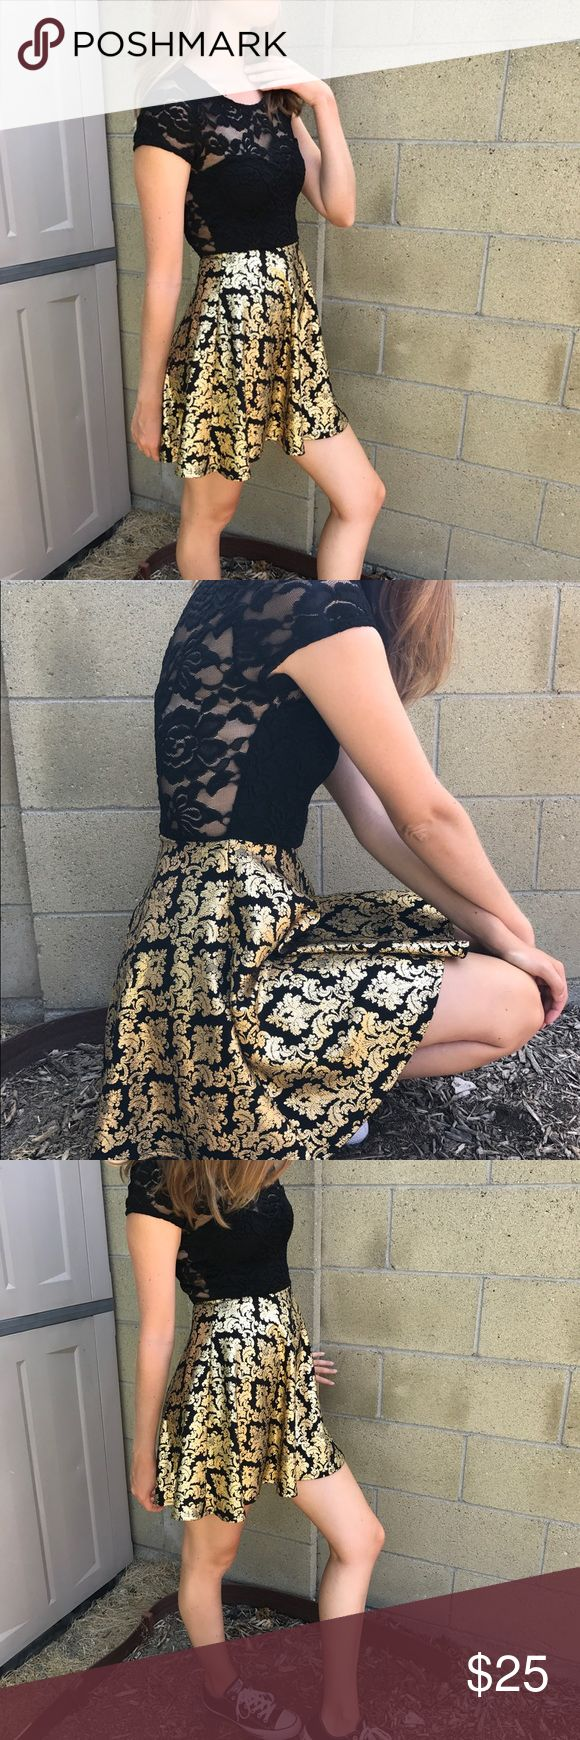 Night out dress Super fun n' flirty dress perfect for a girls night out! I wore it as a formal dress but looks just as cute dressed down with converse! Has a see through lace back and a slightly flared skirt with a gold and black pattern. Could fit an xs or s Windsor Dresses Mini